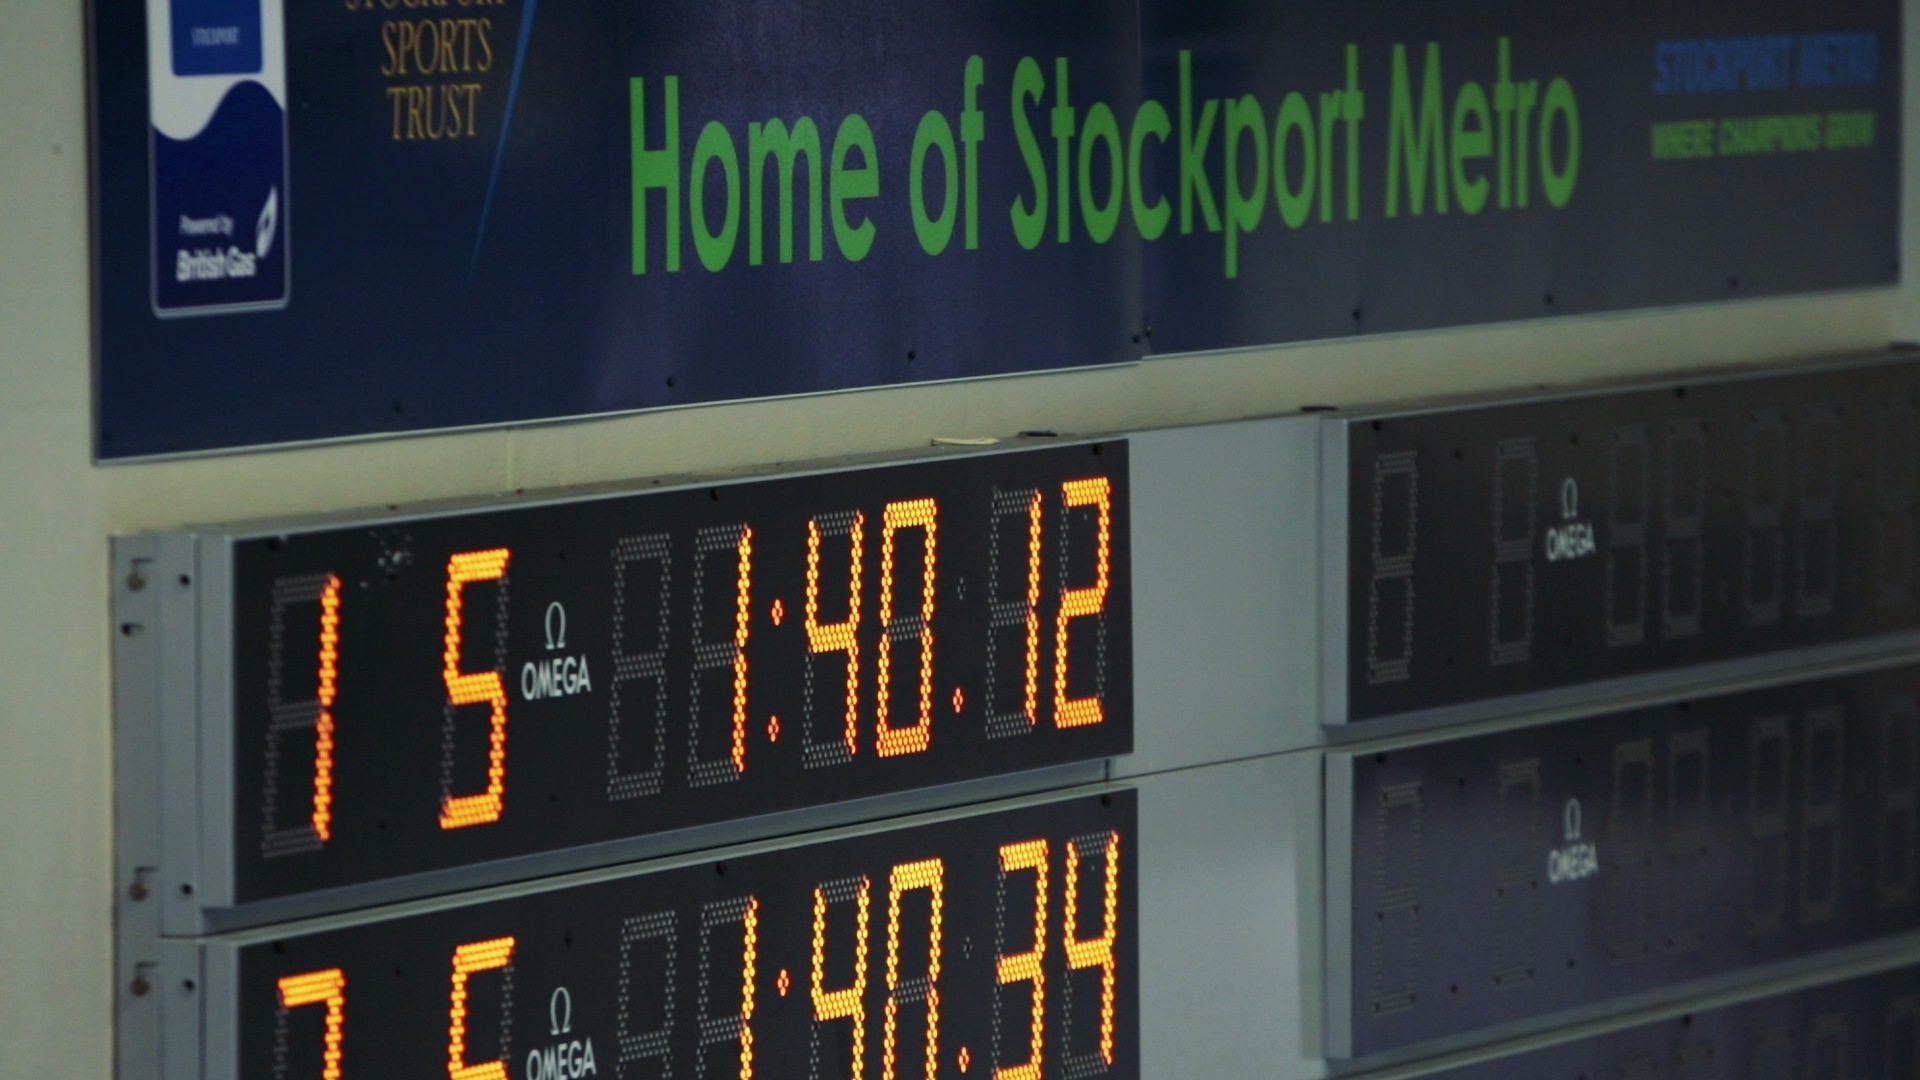 2938cdc07e Stockport Metro Swimmers Take Down Guinness Record For 100 x 50m Relay